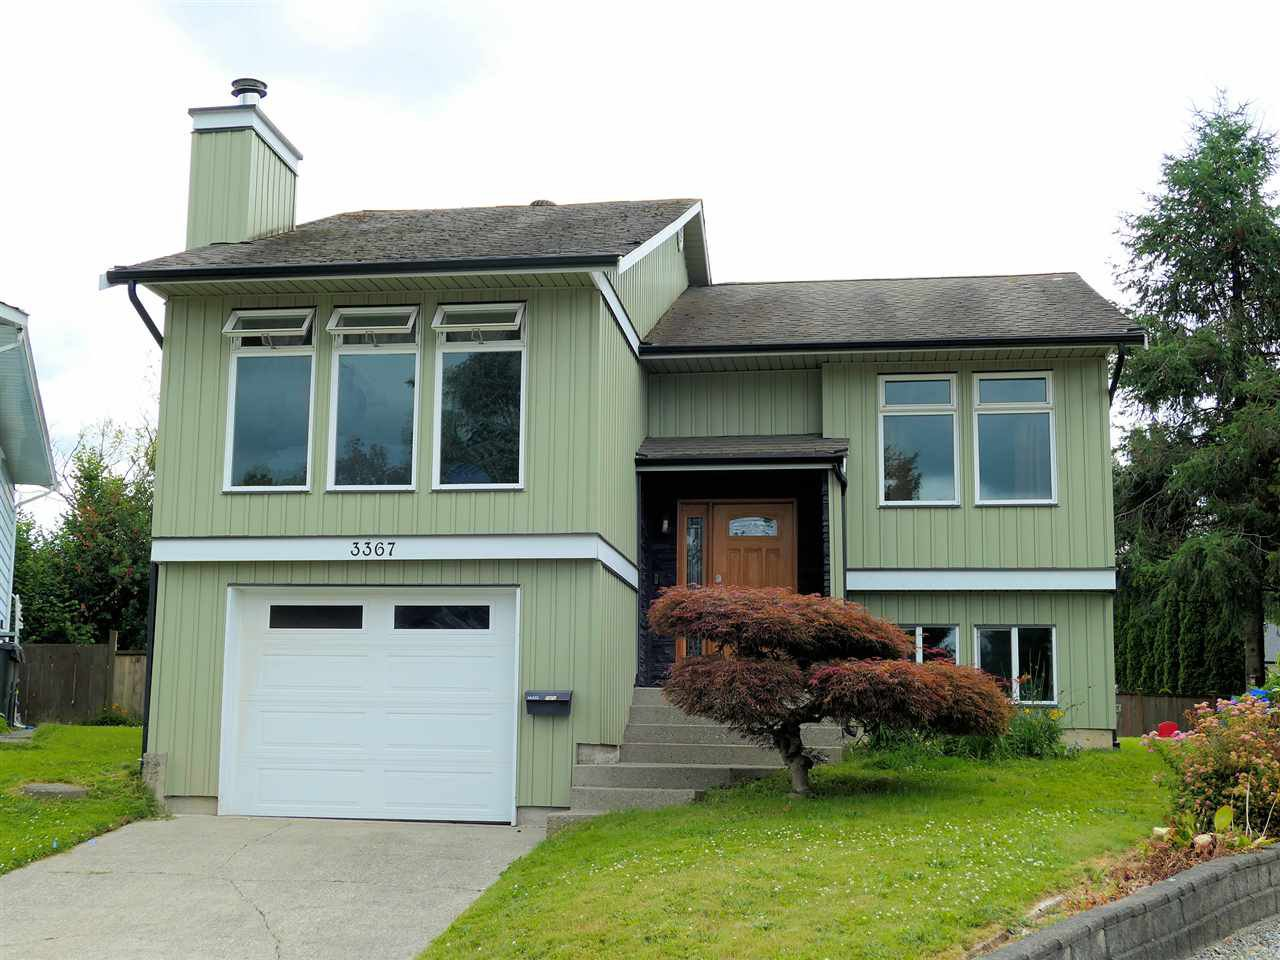 Main Photo: 3367 271B Street in Langley: Aldergrove Langley House for sale : MLS®# R2387797